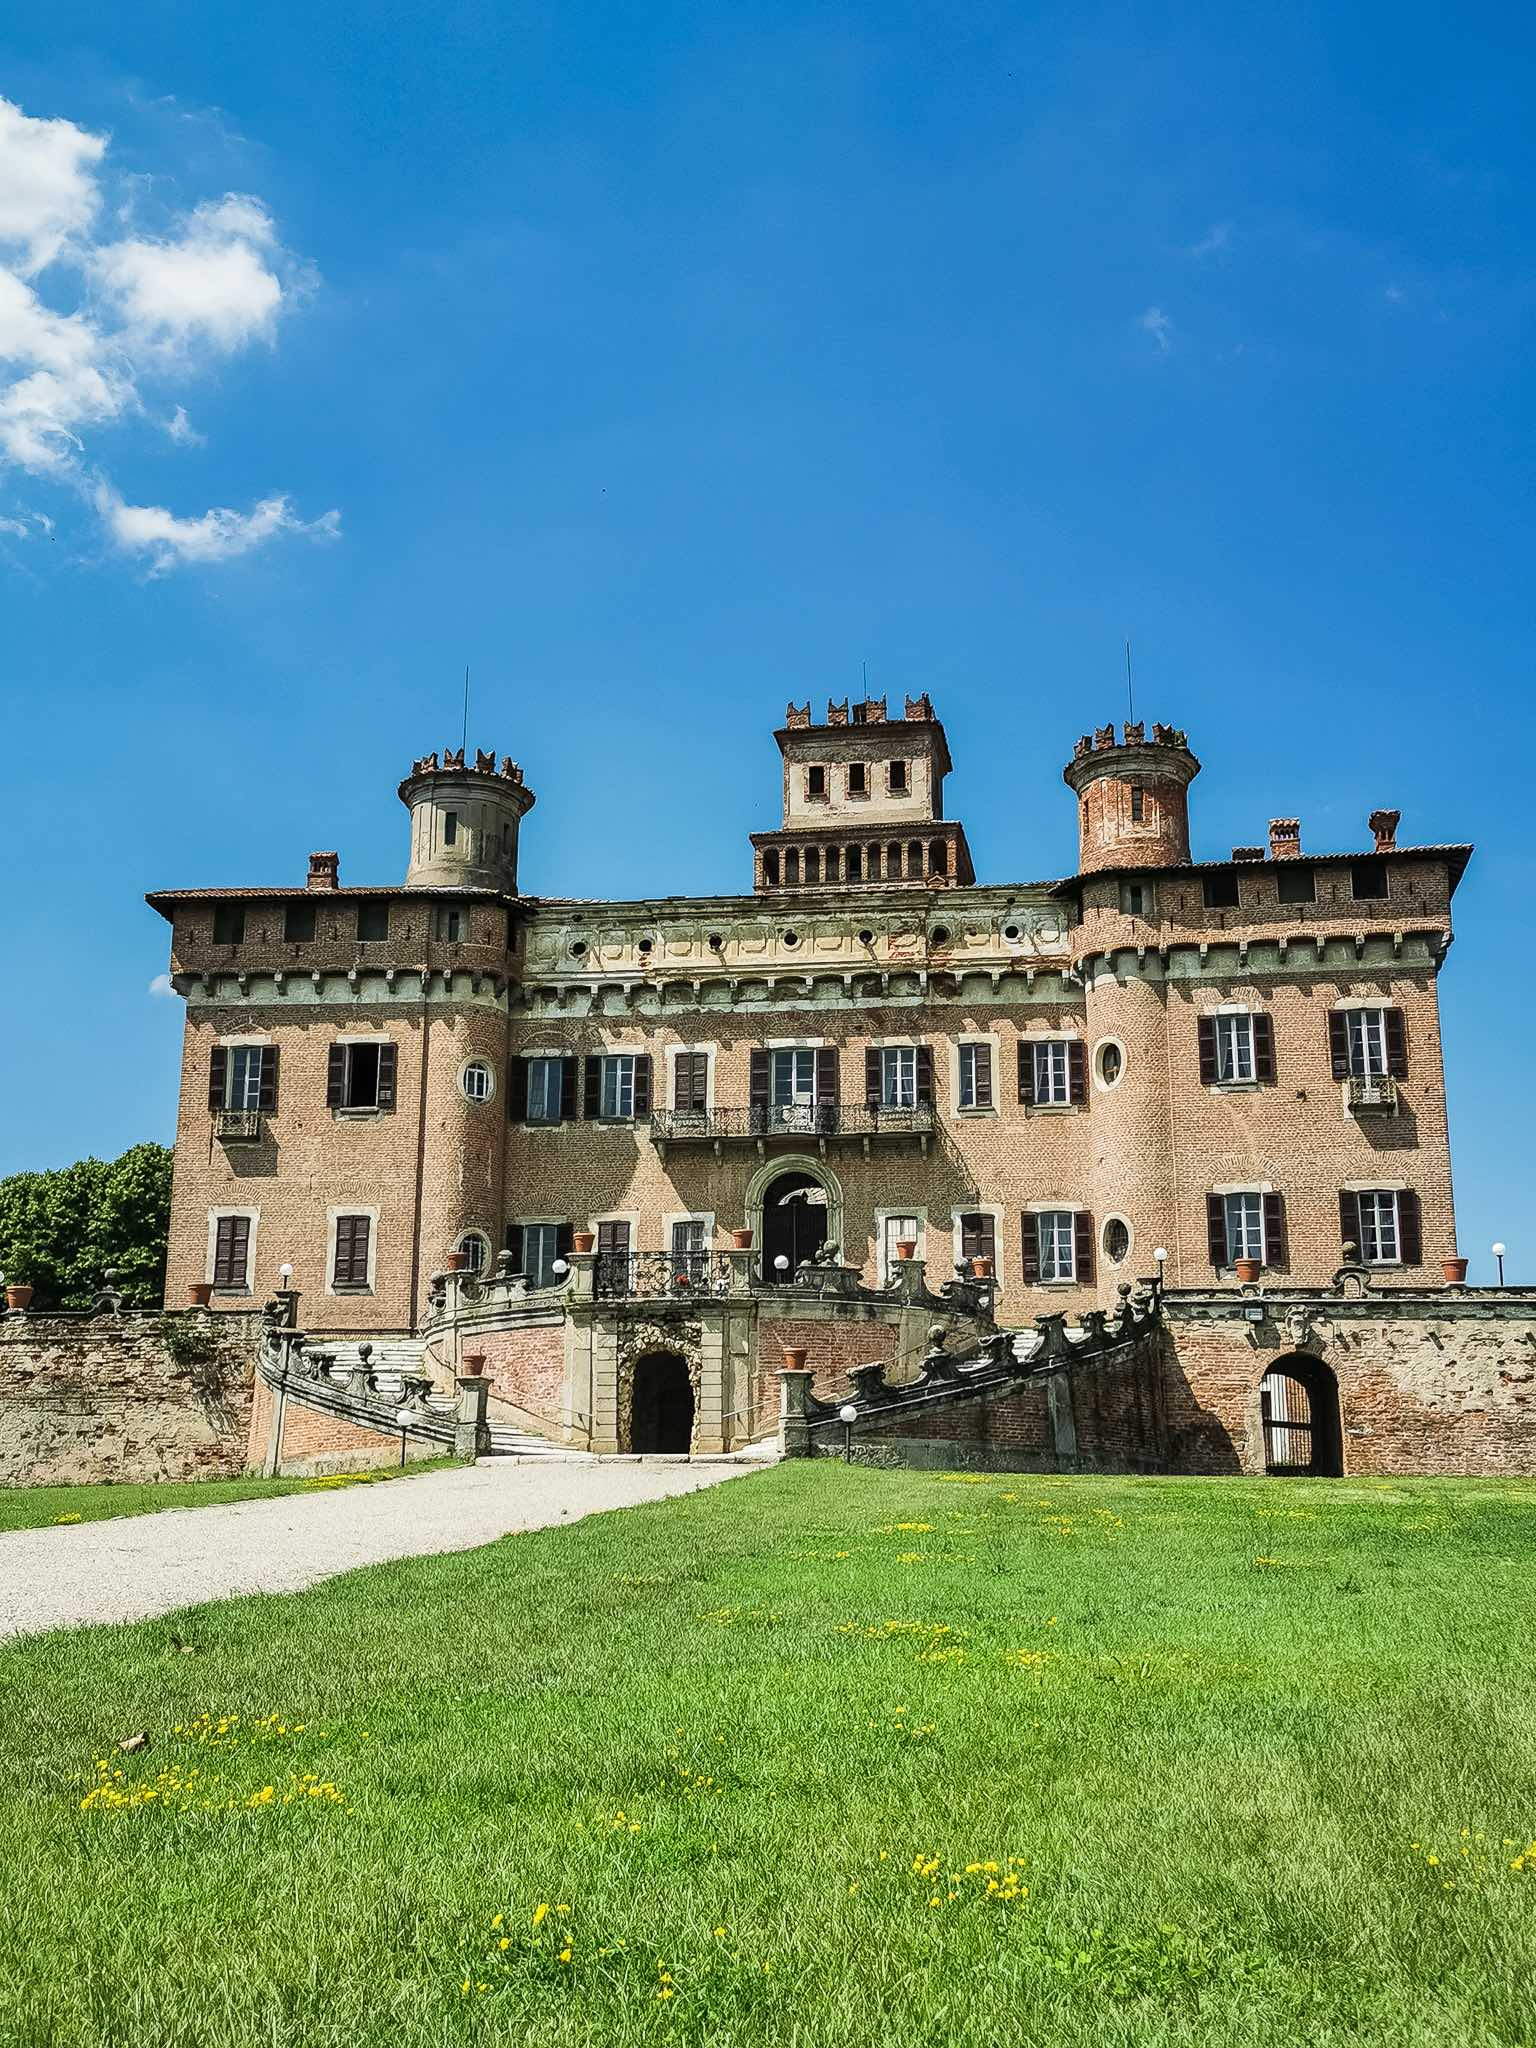 The splendid Castle of Chignolo Po, one of Lombardy's hidden gems